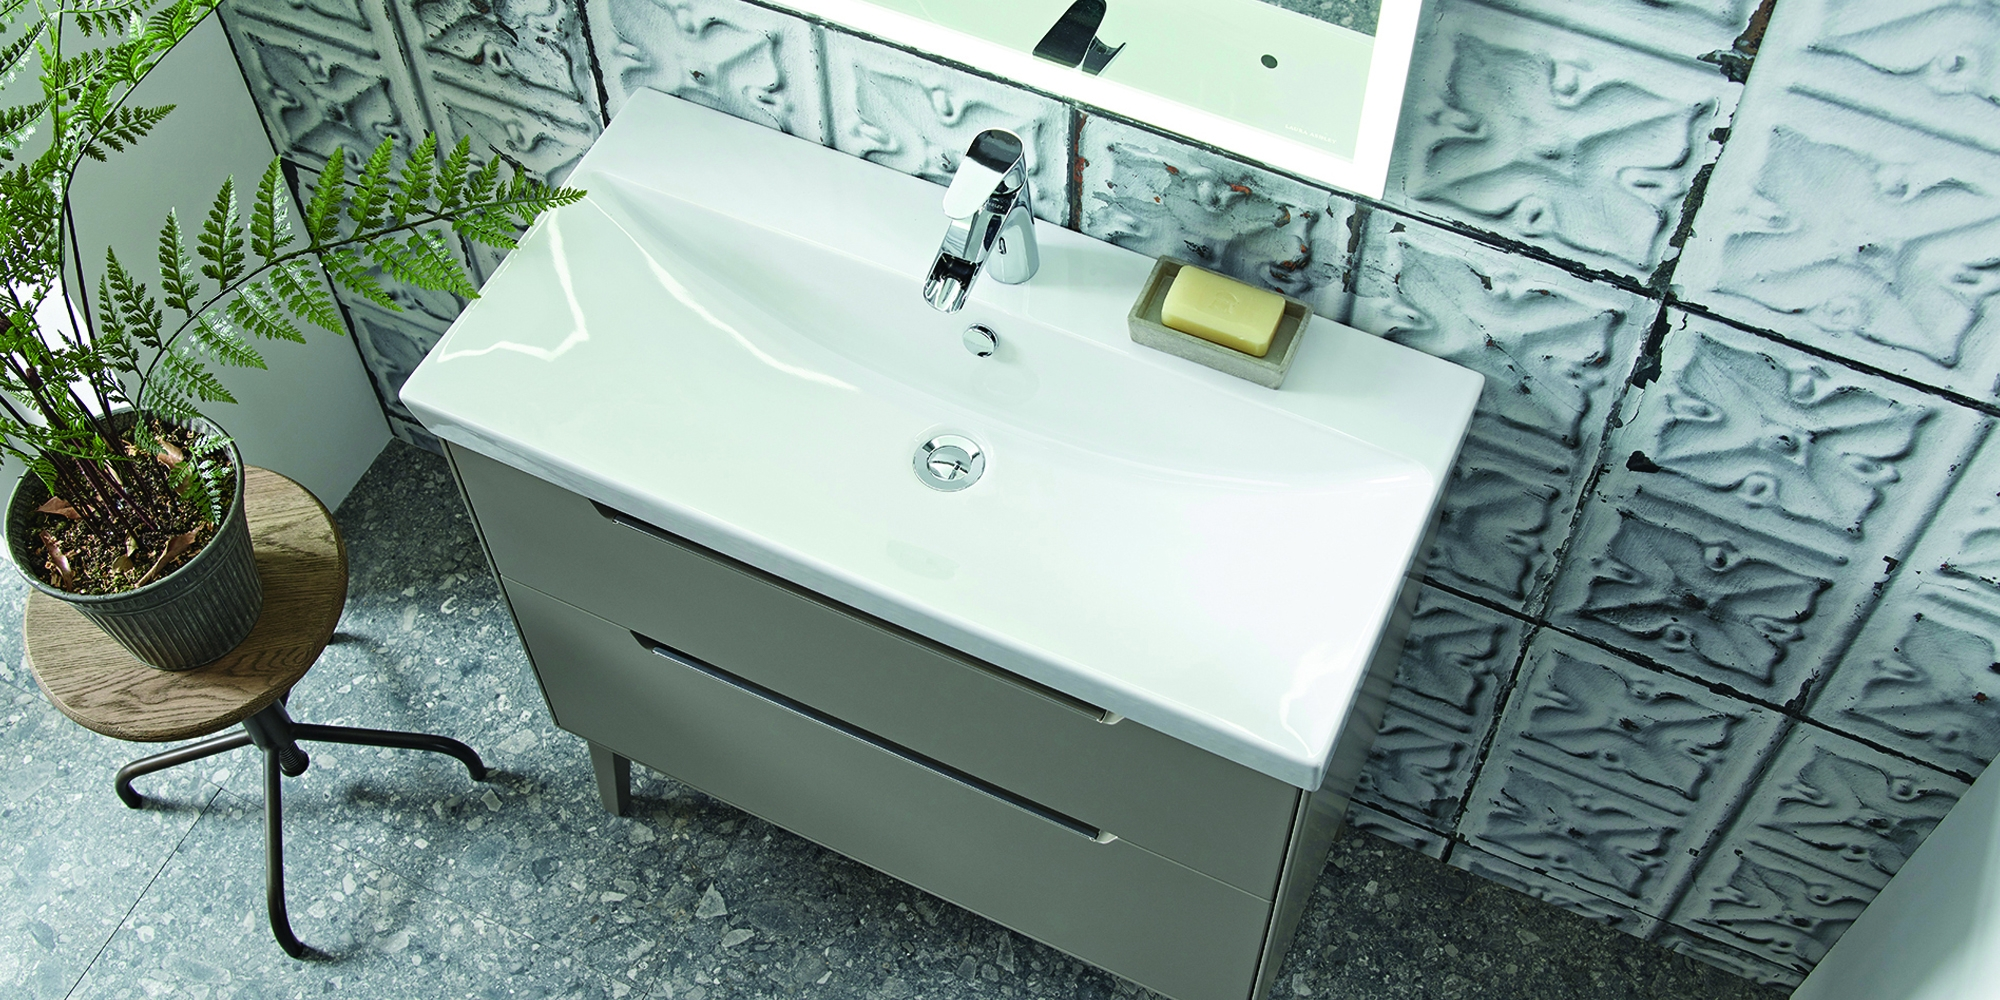 taps and brassware, taps chester, taps shrewsbury, faucets chester, bathrooms midwales